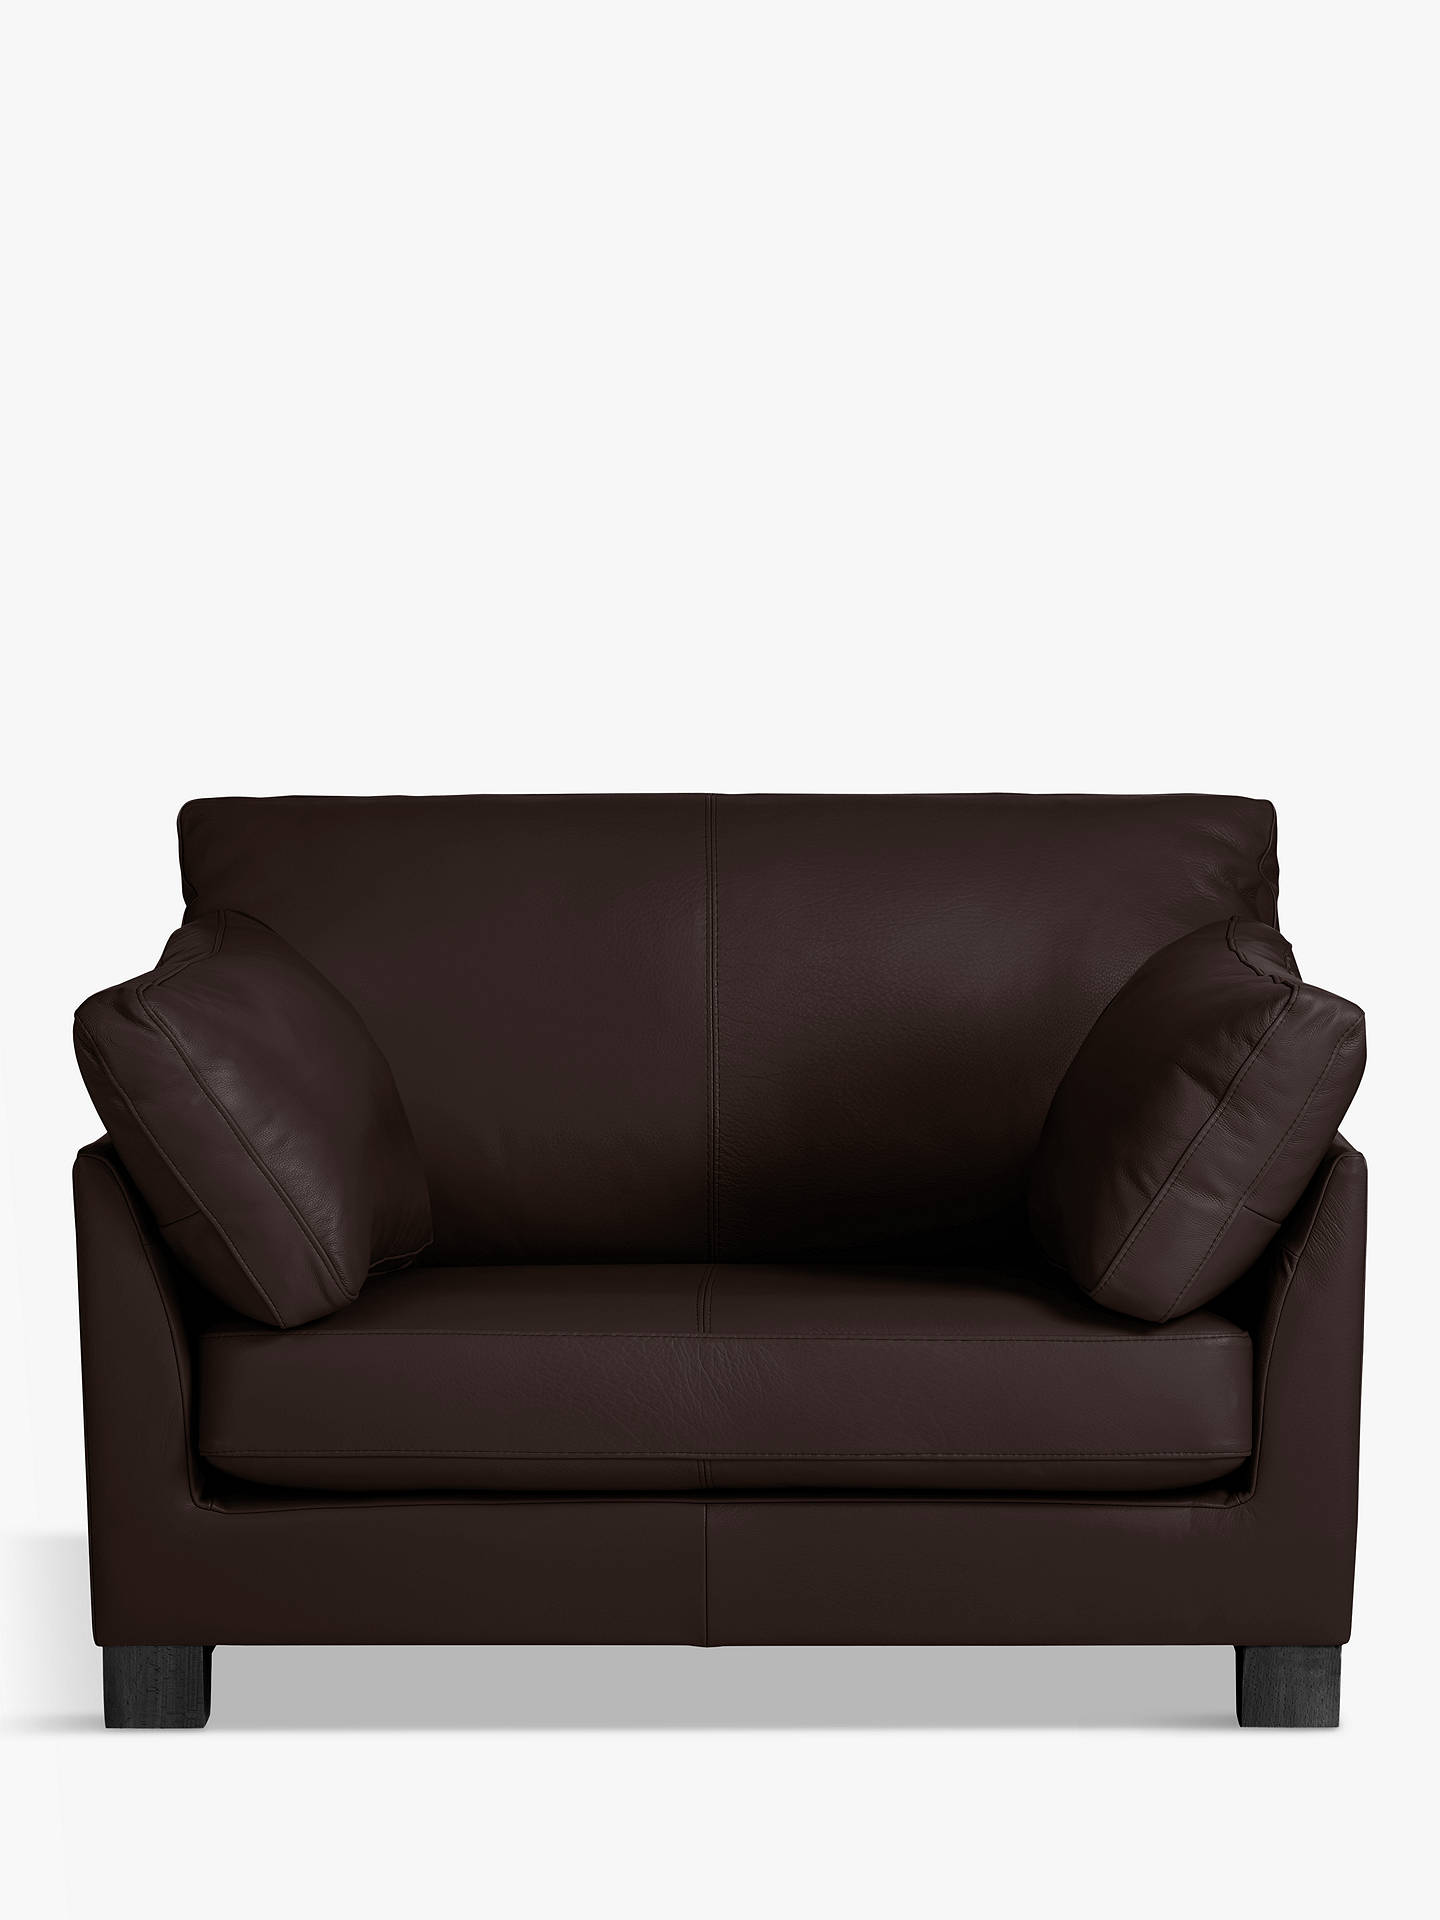 Buy John Lewis & Partners Ikon Leather Snuggler, Dark Leg, Demetra Charcoal Online at johnlewis.com